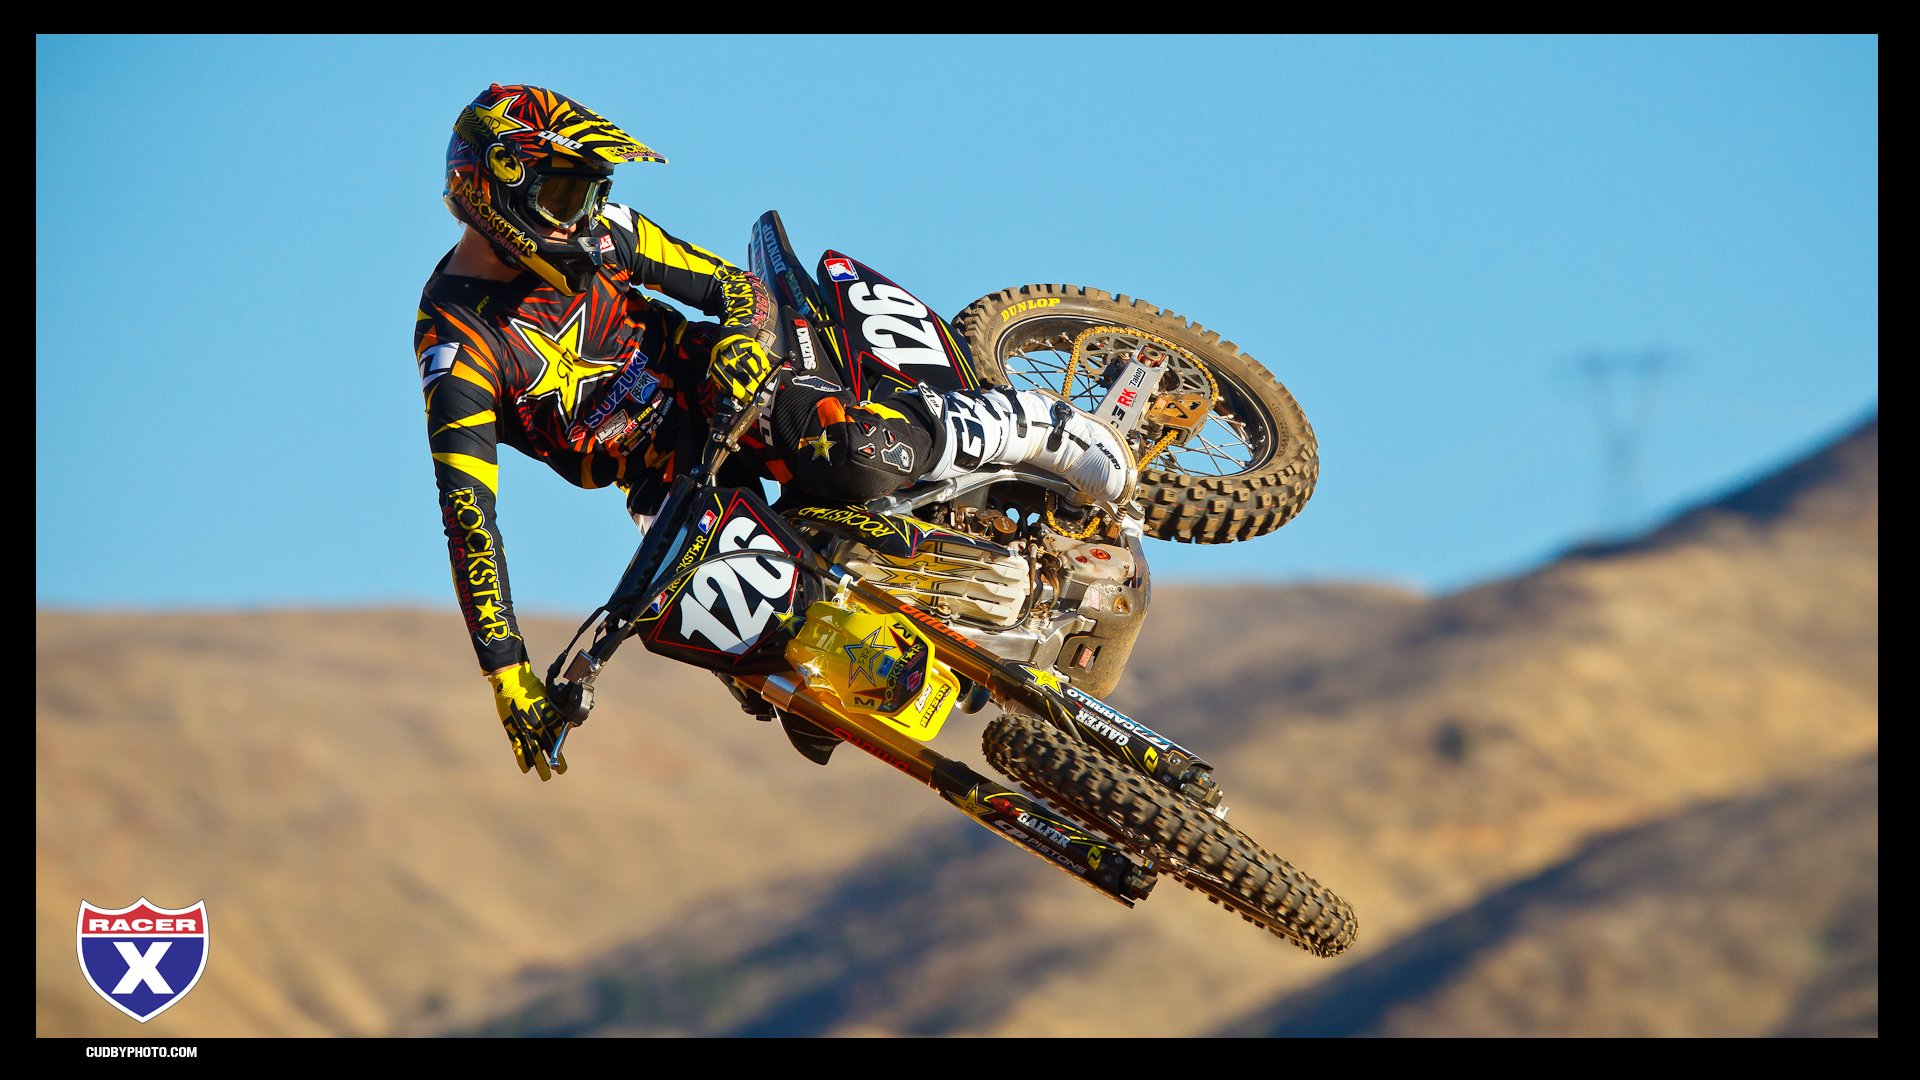 Free Download Pics Of Dirt Bike Wallpaper Desktop Pics Of